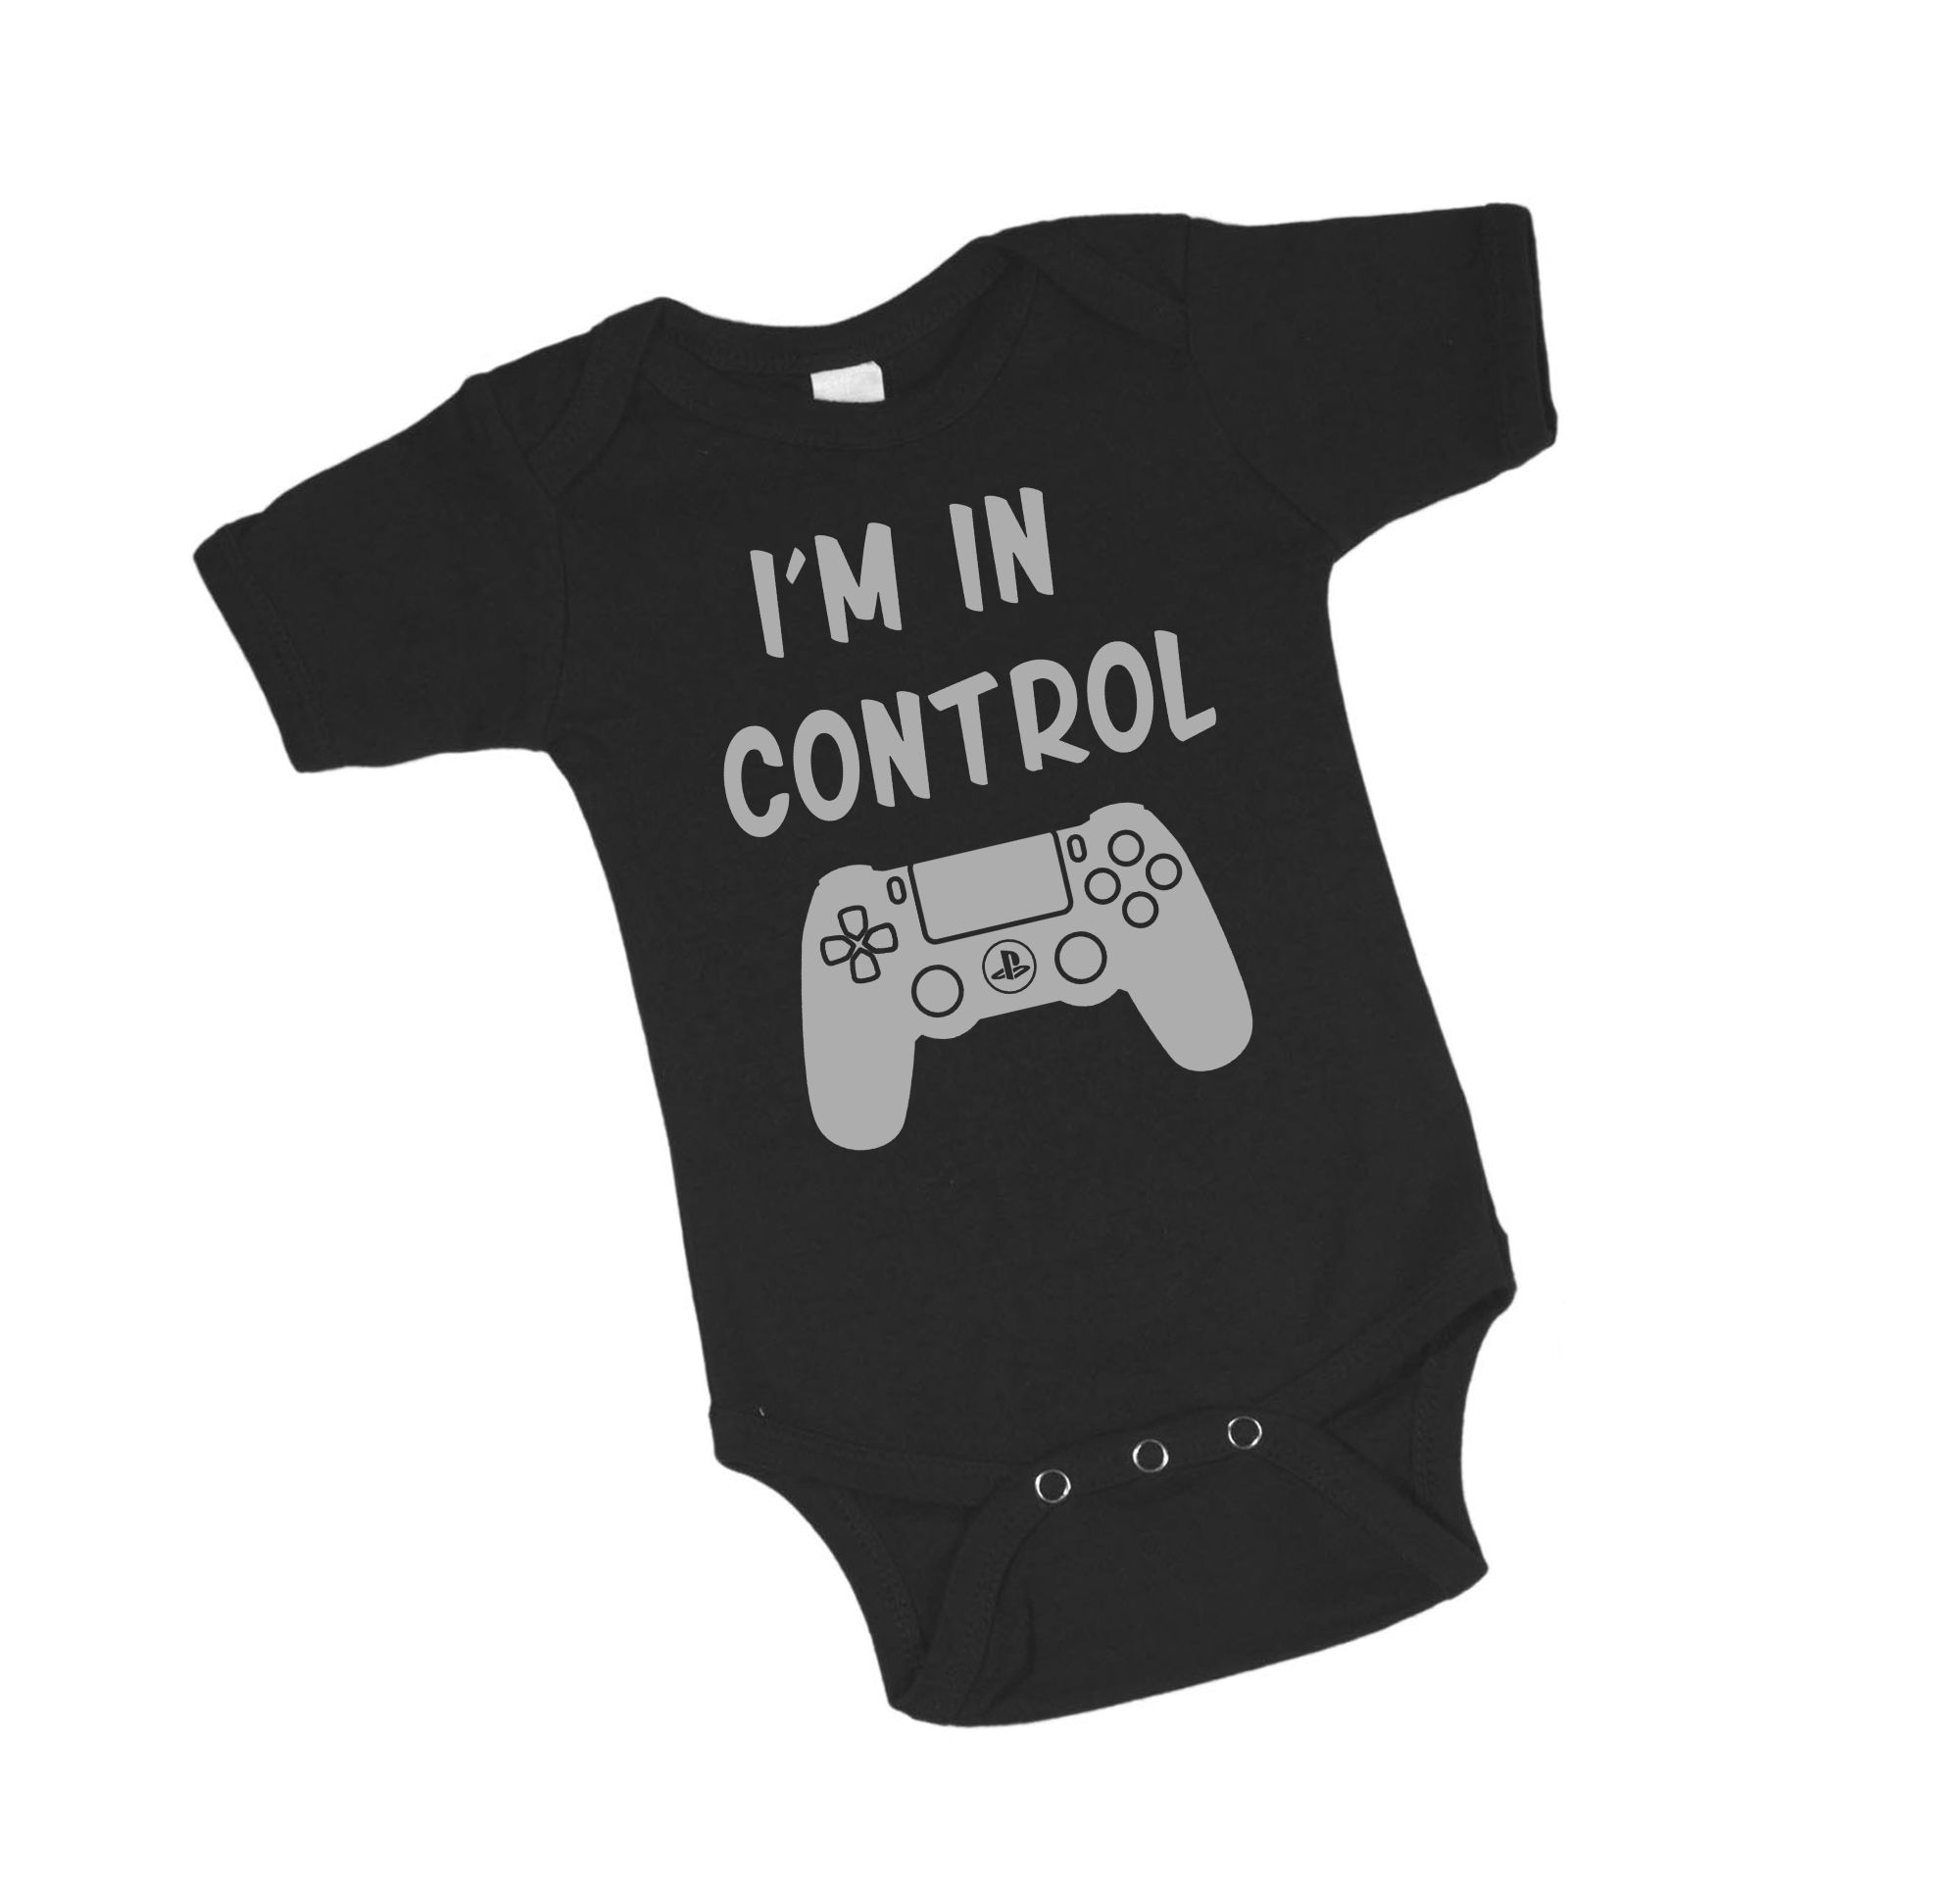 I m in Control Video Gamer Black Baby Bodysuit by Project Pinup $15